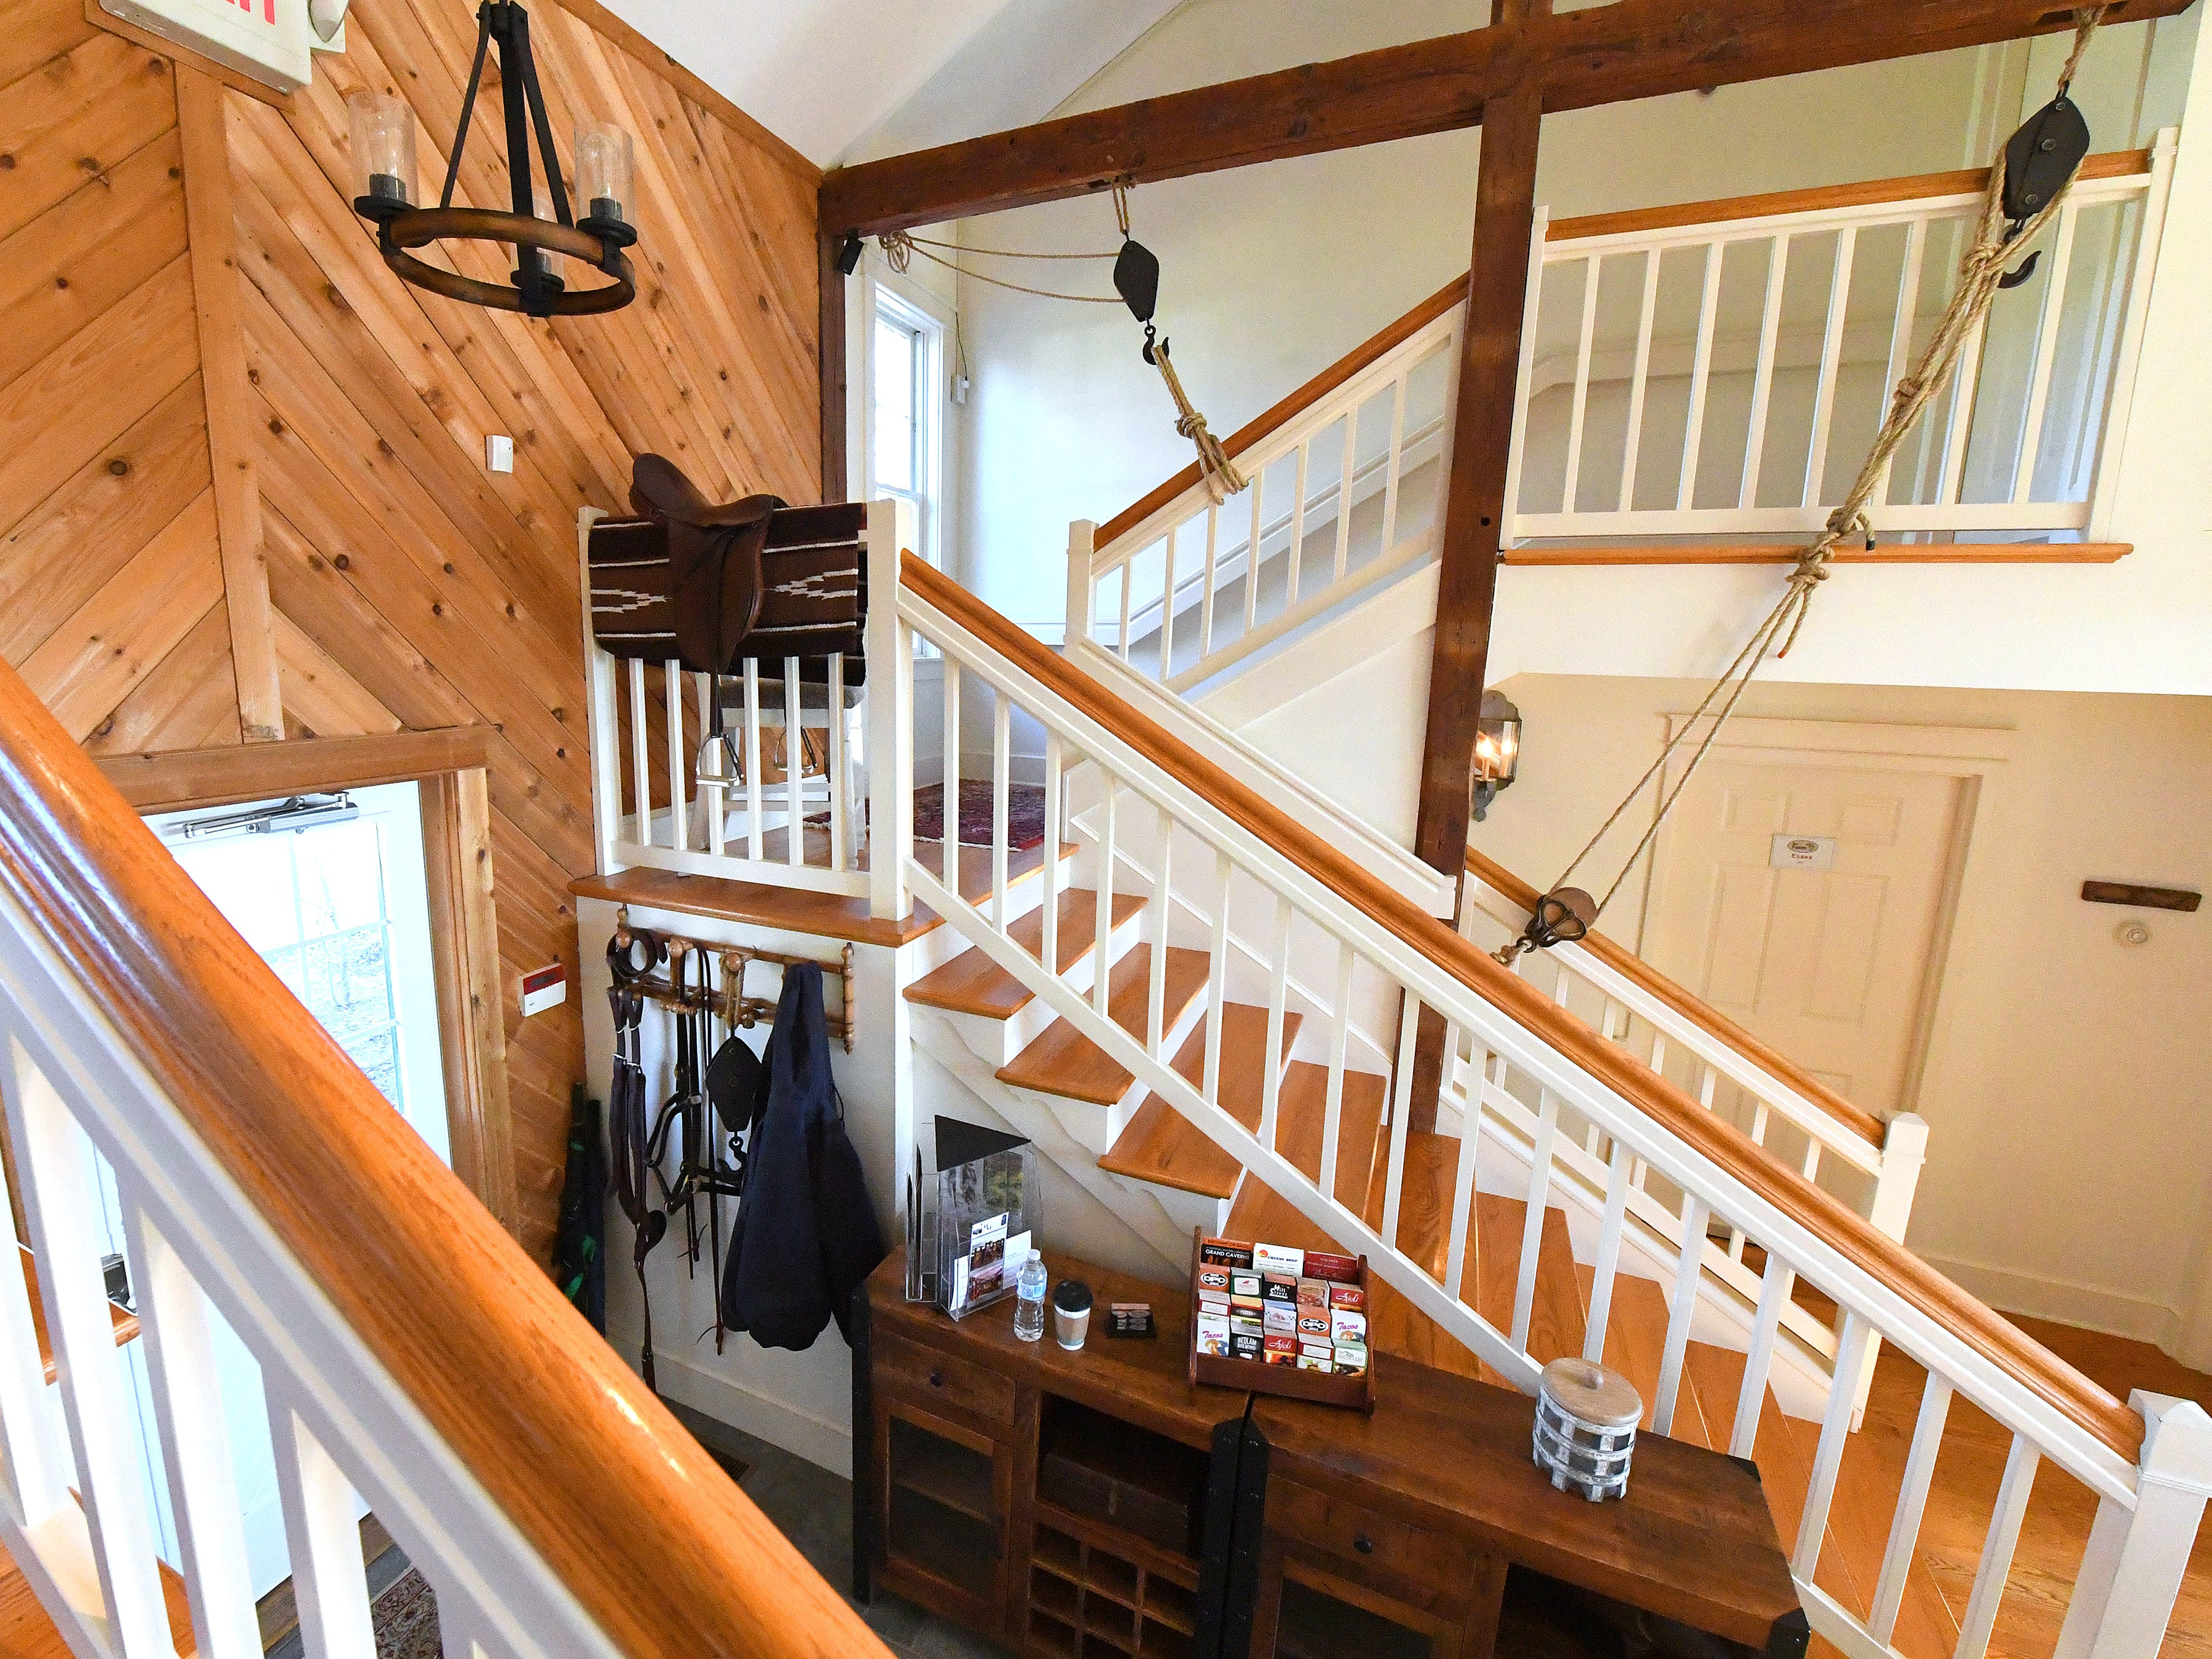 Stairs lead up to the some of the various rooms inside the Millstone Barn at the Inn at WestShire Farms in Staunton.